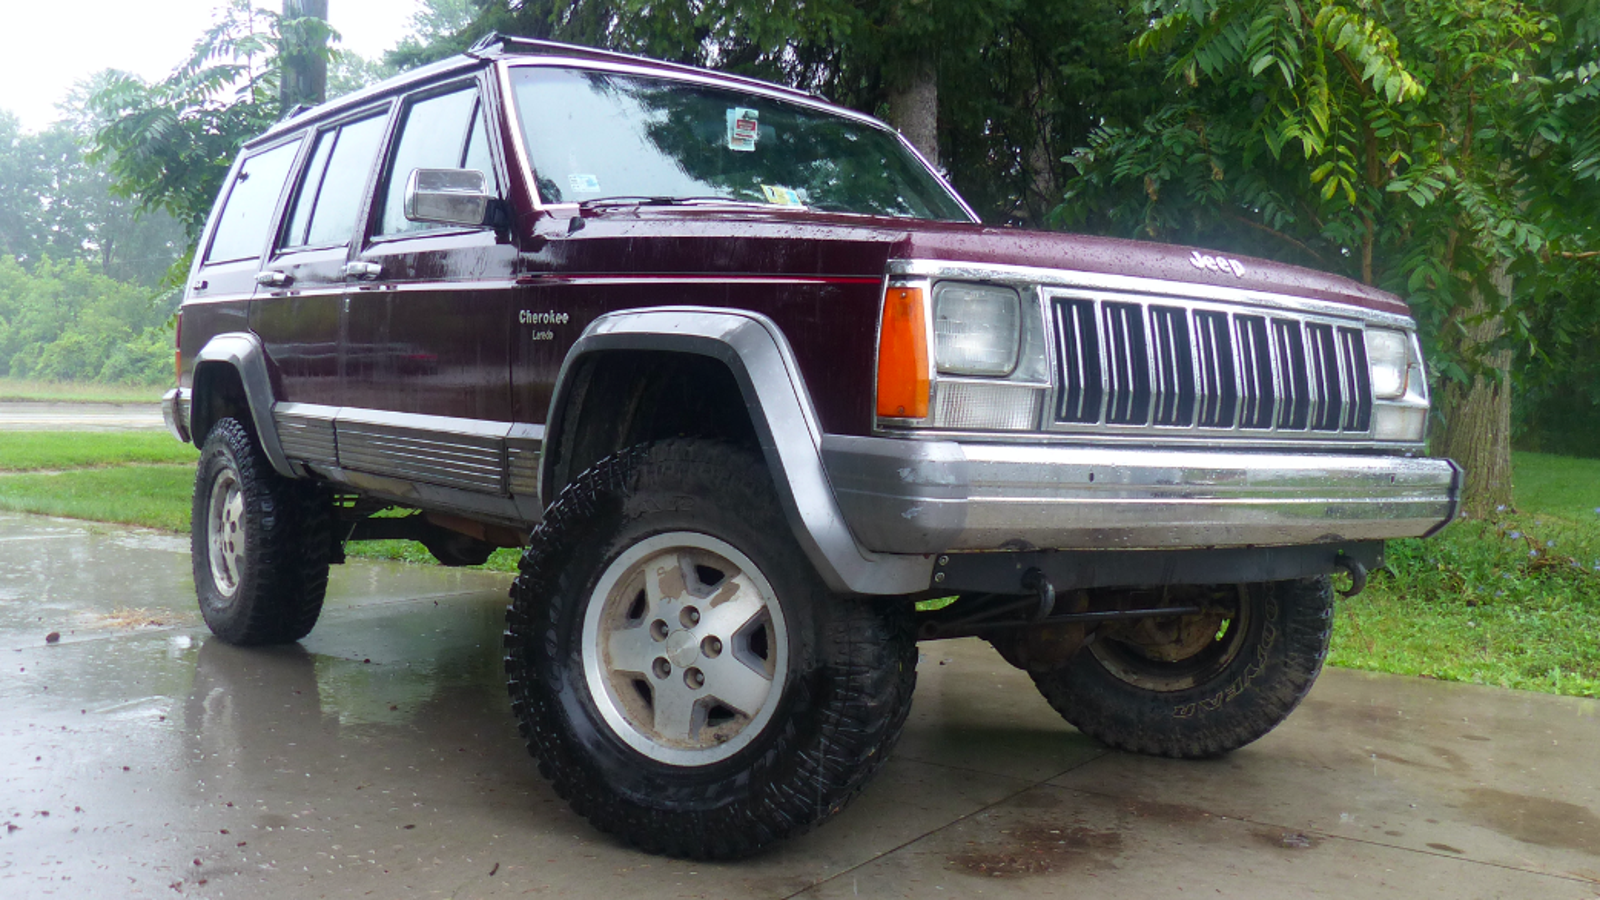 hight resolution of jeep xj 5 inch lift 31